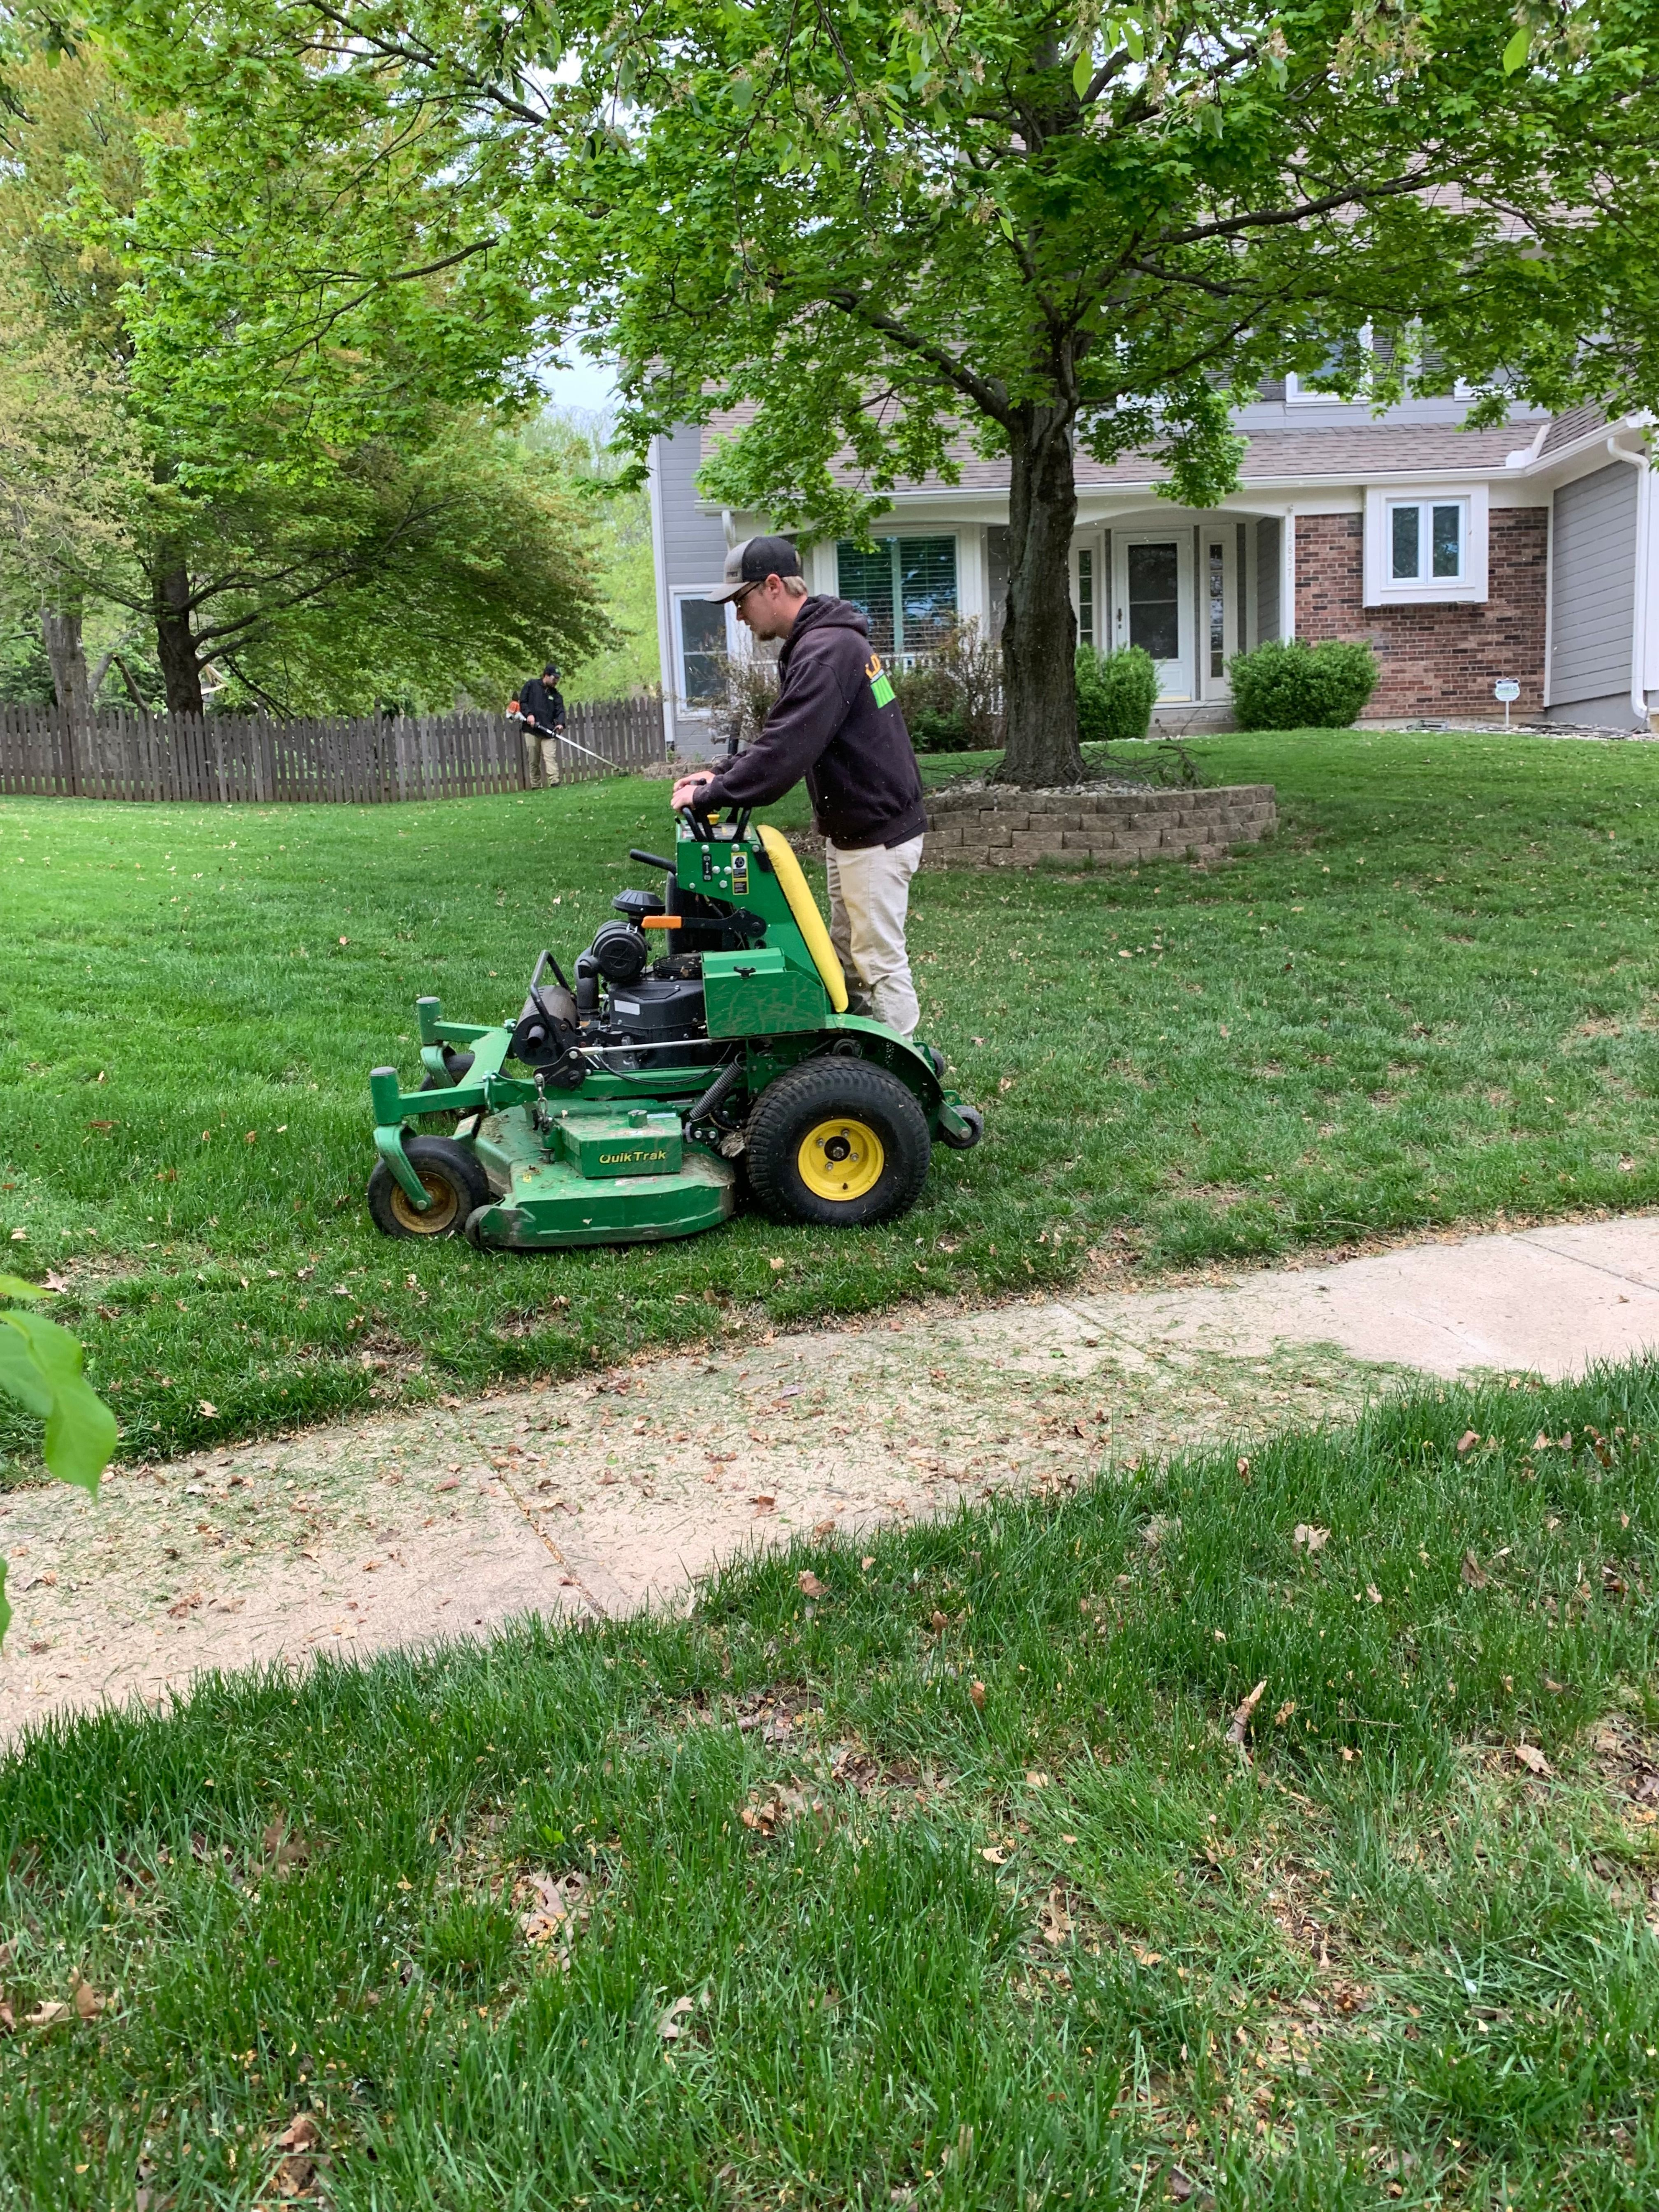 Are You Looking For A Career Change Here Are 5 Reasons Why You Should Join A Lawn Care Company Lawn Care Lawn Care Companies Lawn Service